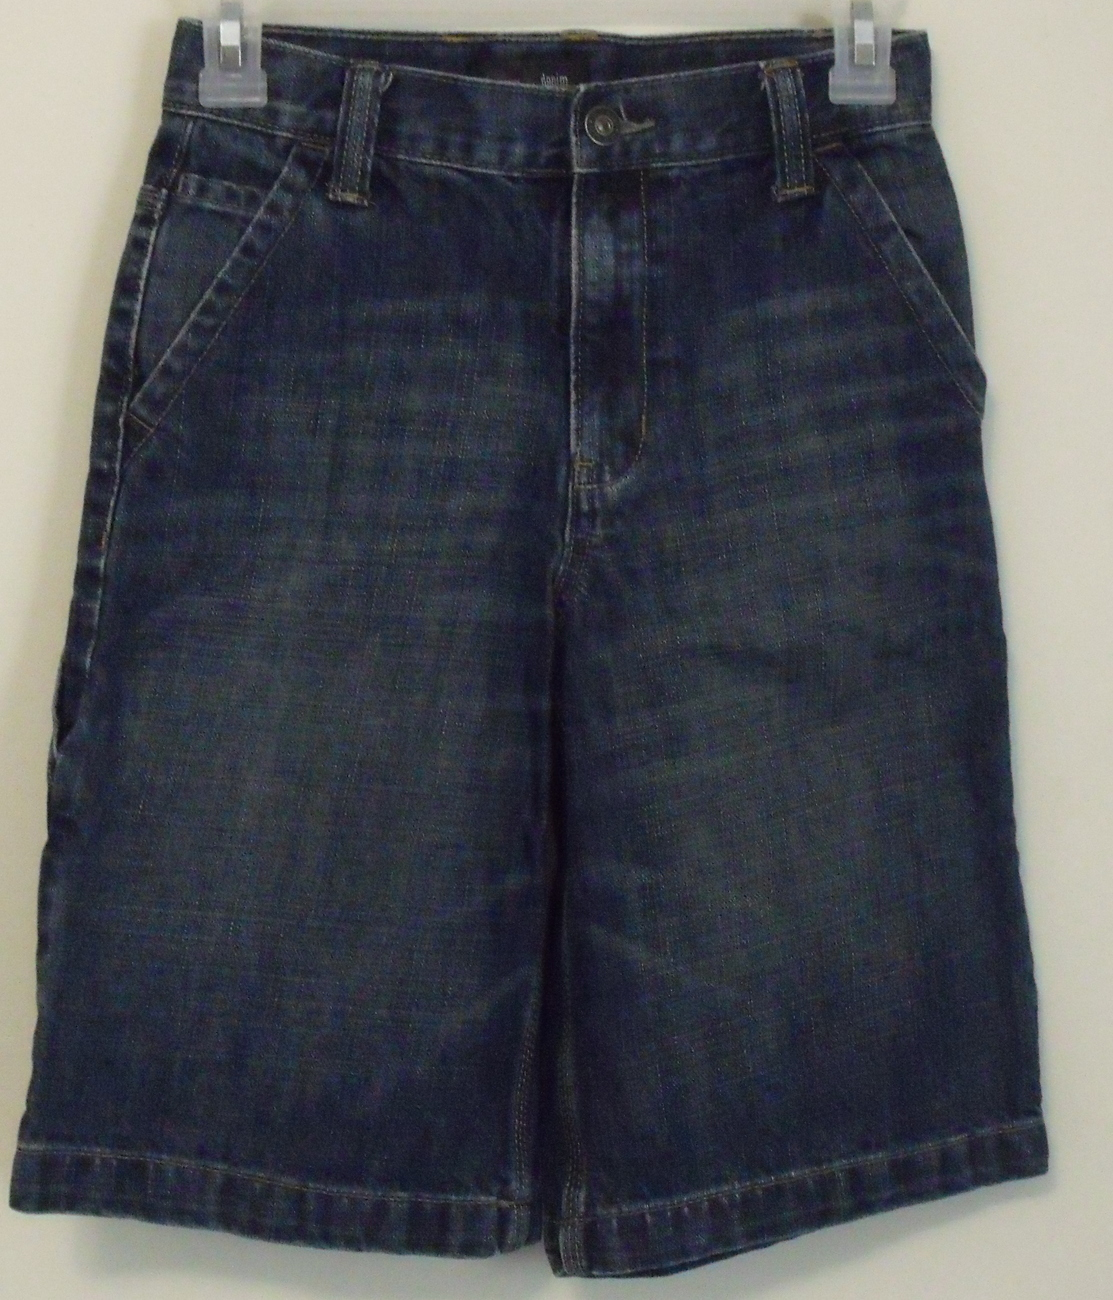 Primary image for Boys Old Navy Carpenter Style Denim Blue Cotton Shorts Size 12 Slim